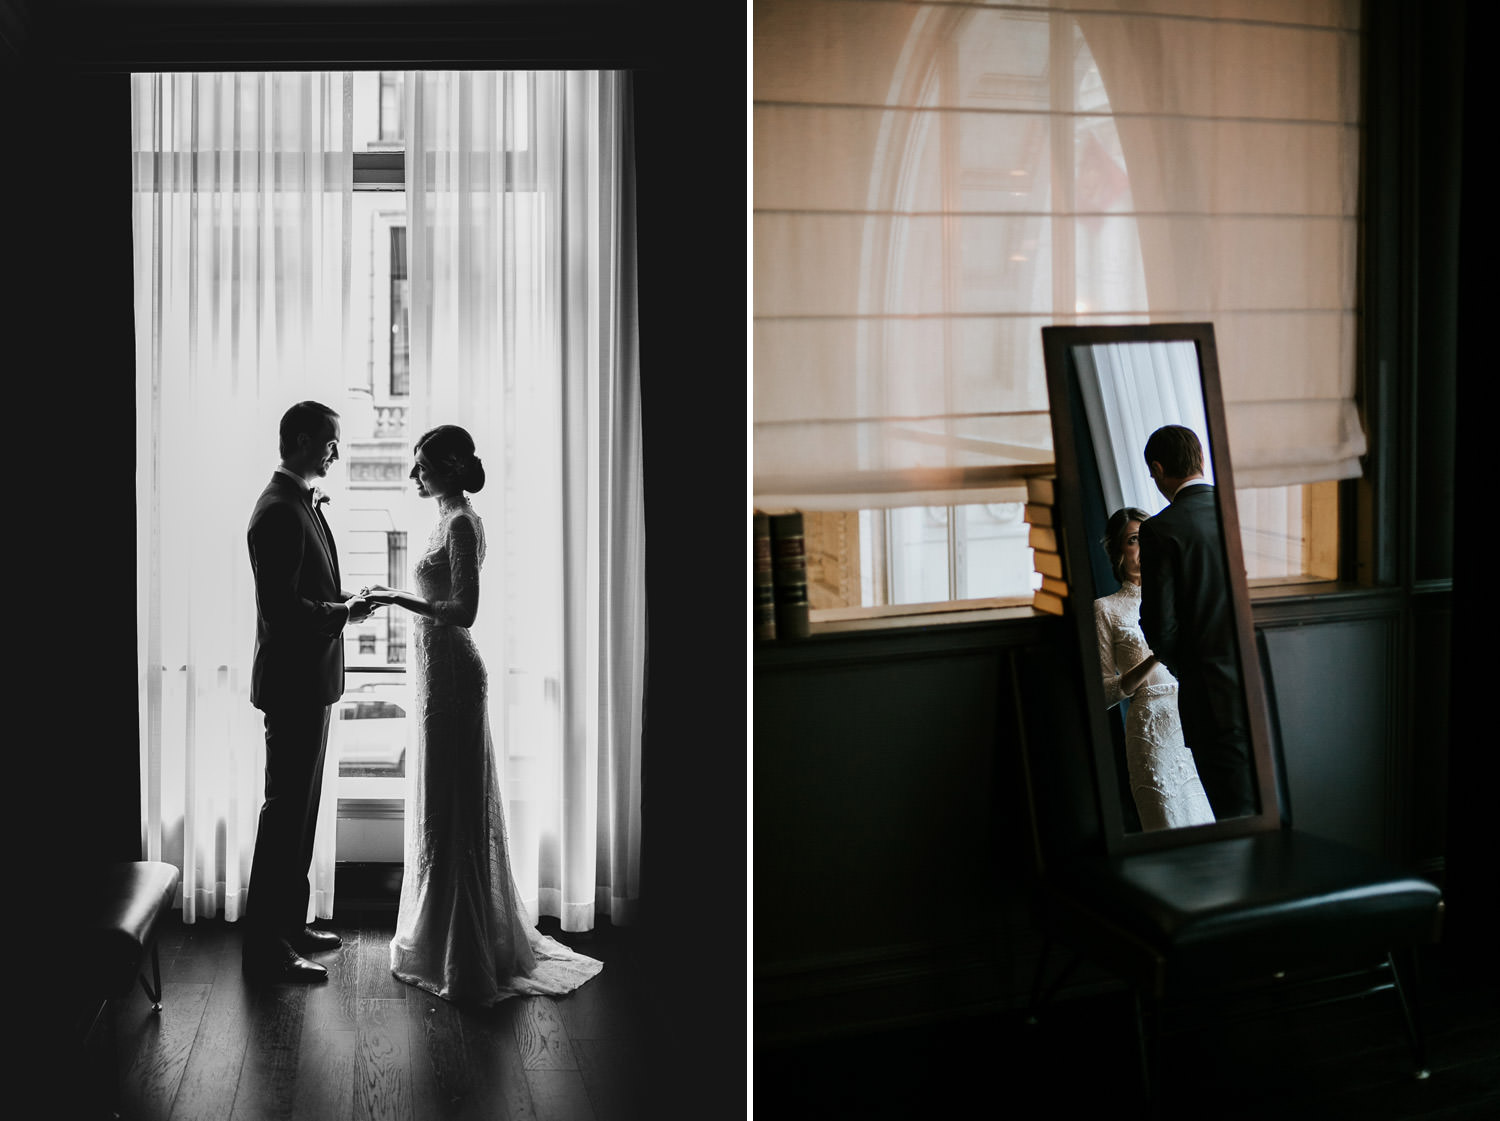 mood portrait of the bride and groom taken on their wedding day at the gray hotel